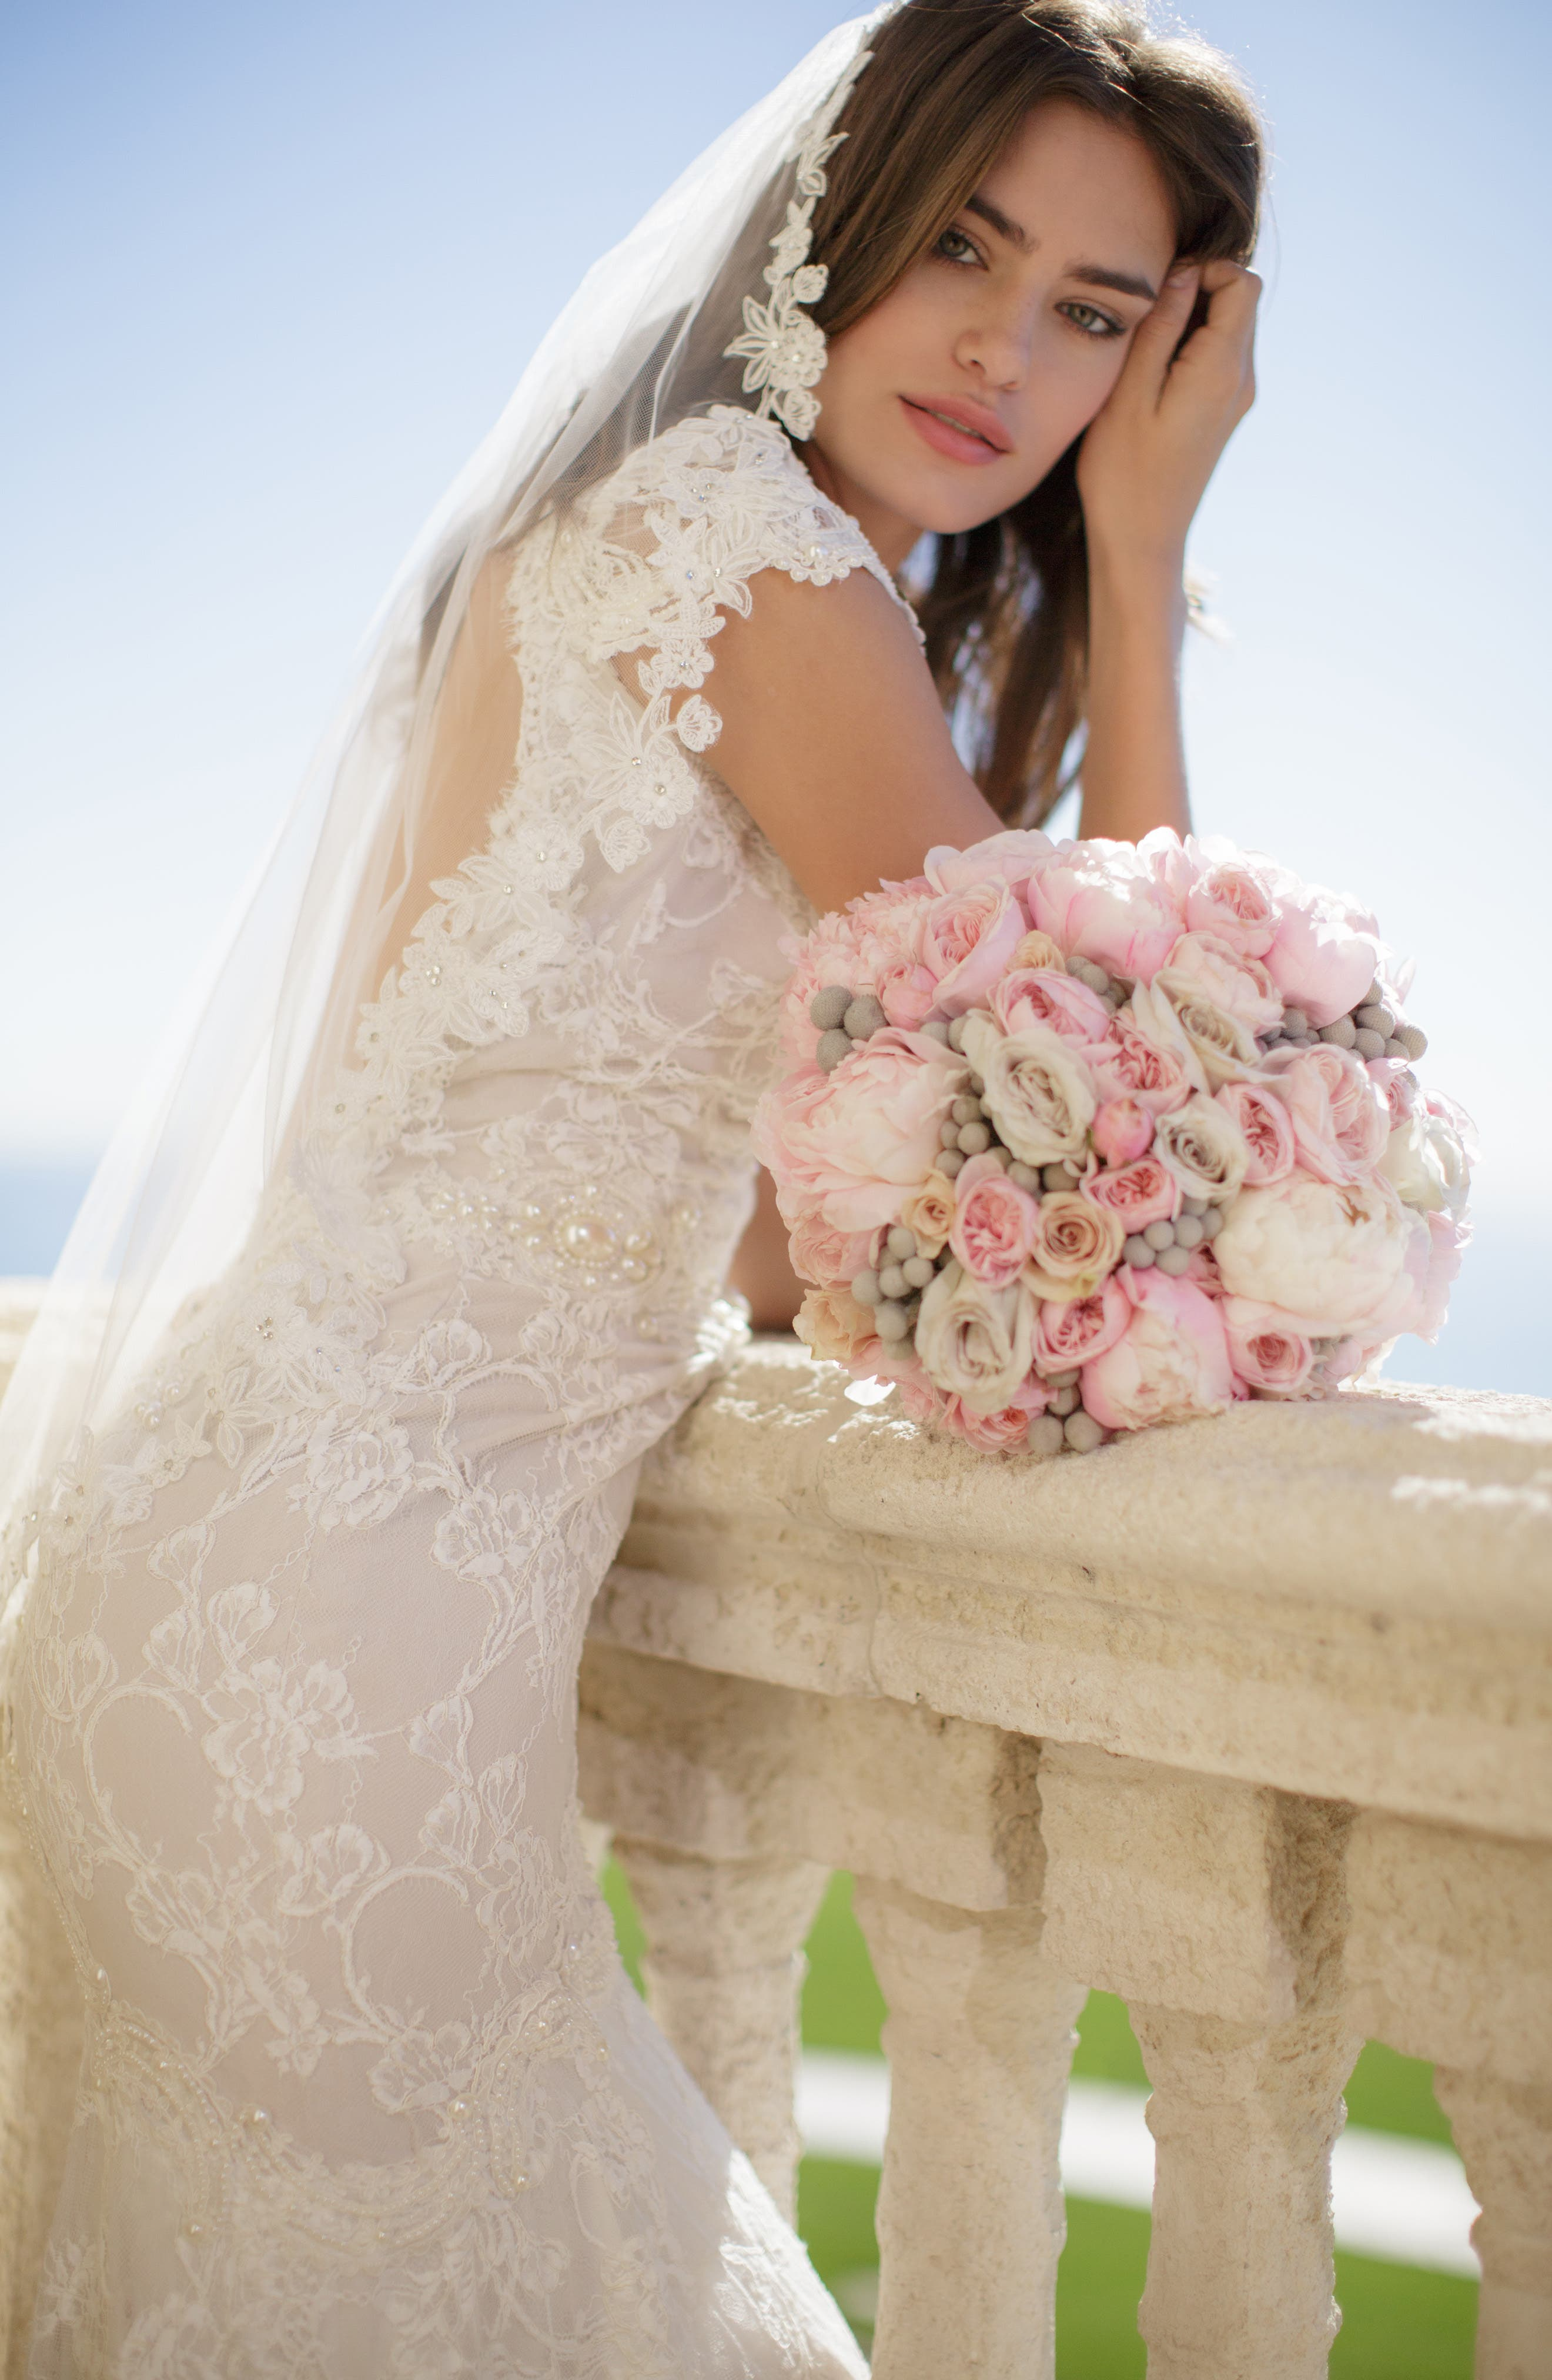 Main Image - Brides & Hairpins 'Angelina' Lace Trim Tulle Veil